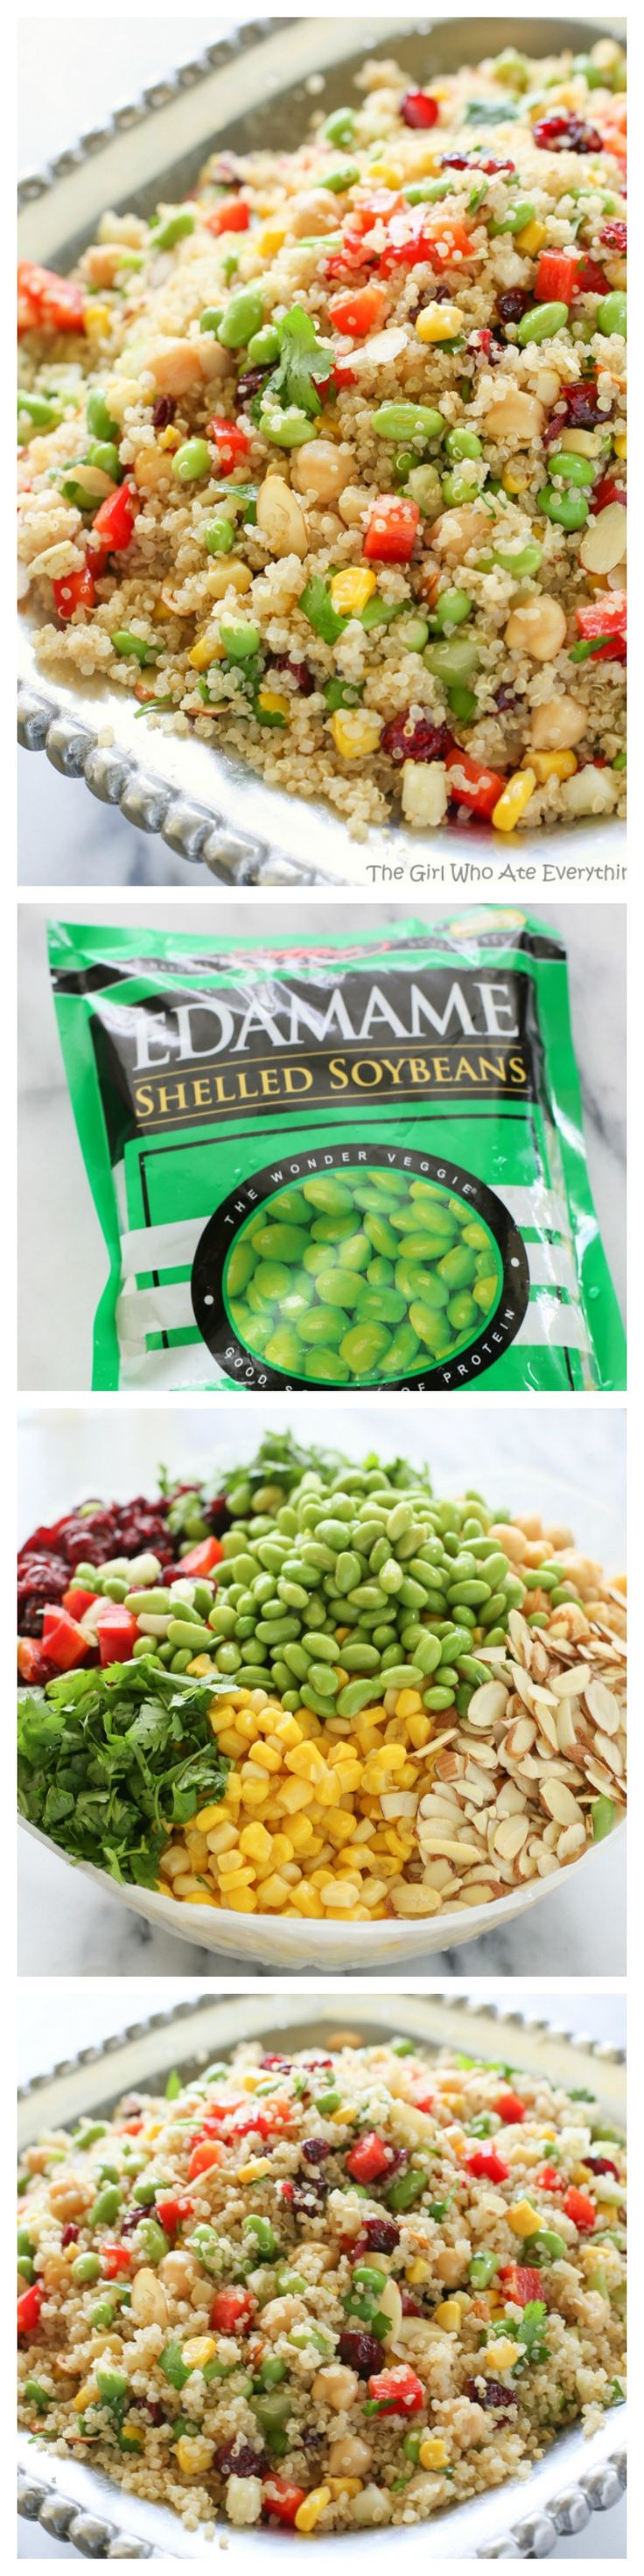 Edamame Quinoa - a light and healthy recipe packed full of super foods. #clean #recipes #healthy #eatclean #recipe